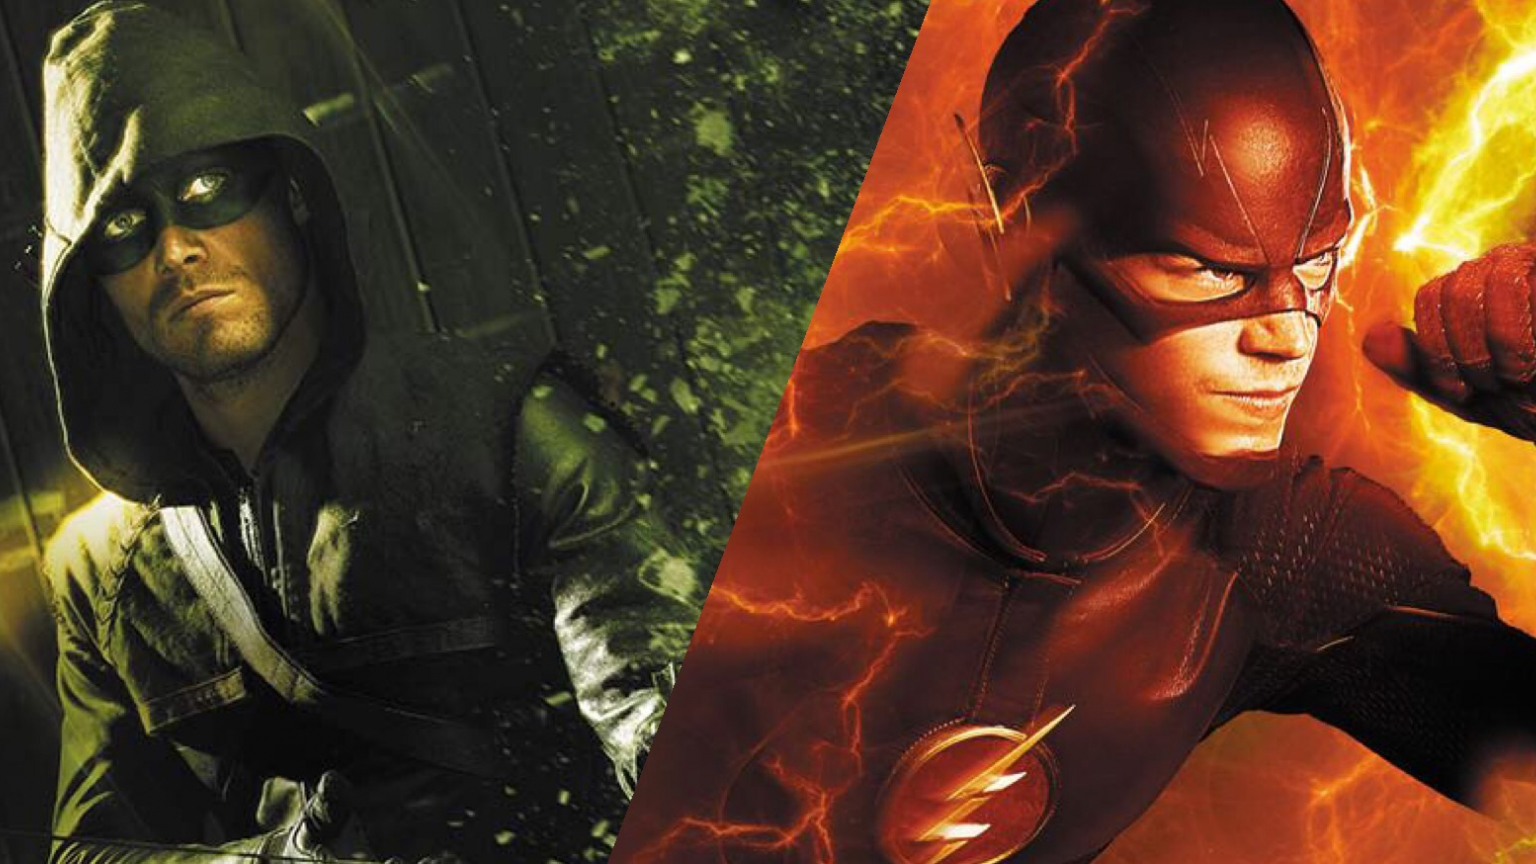 Free Download Photos The Flash Arrow Wallpaper 1632x874 For Your